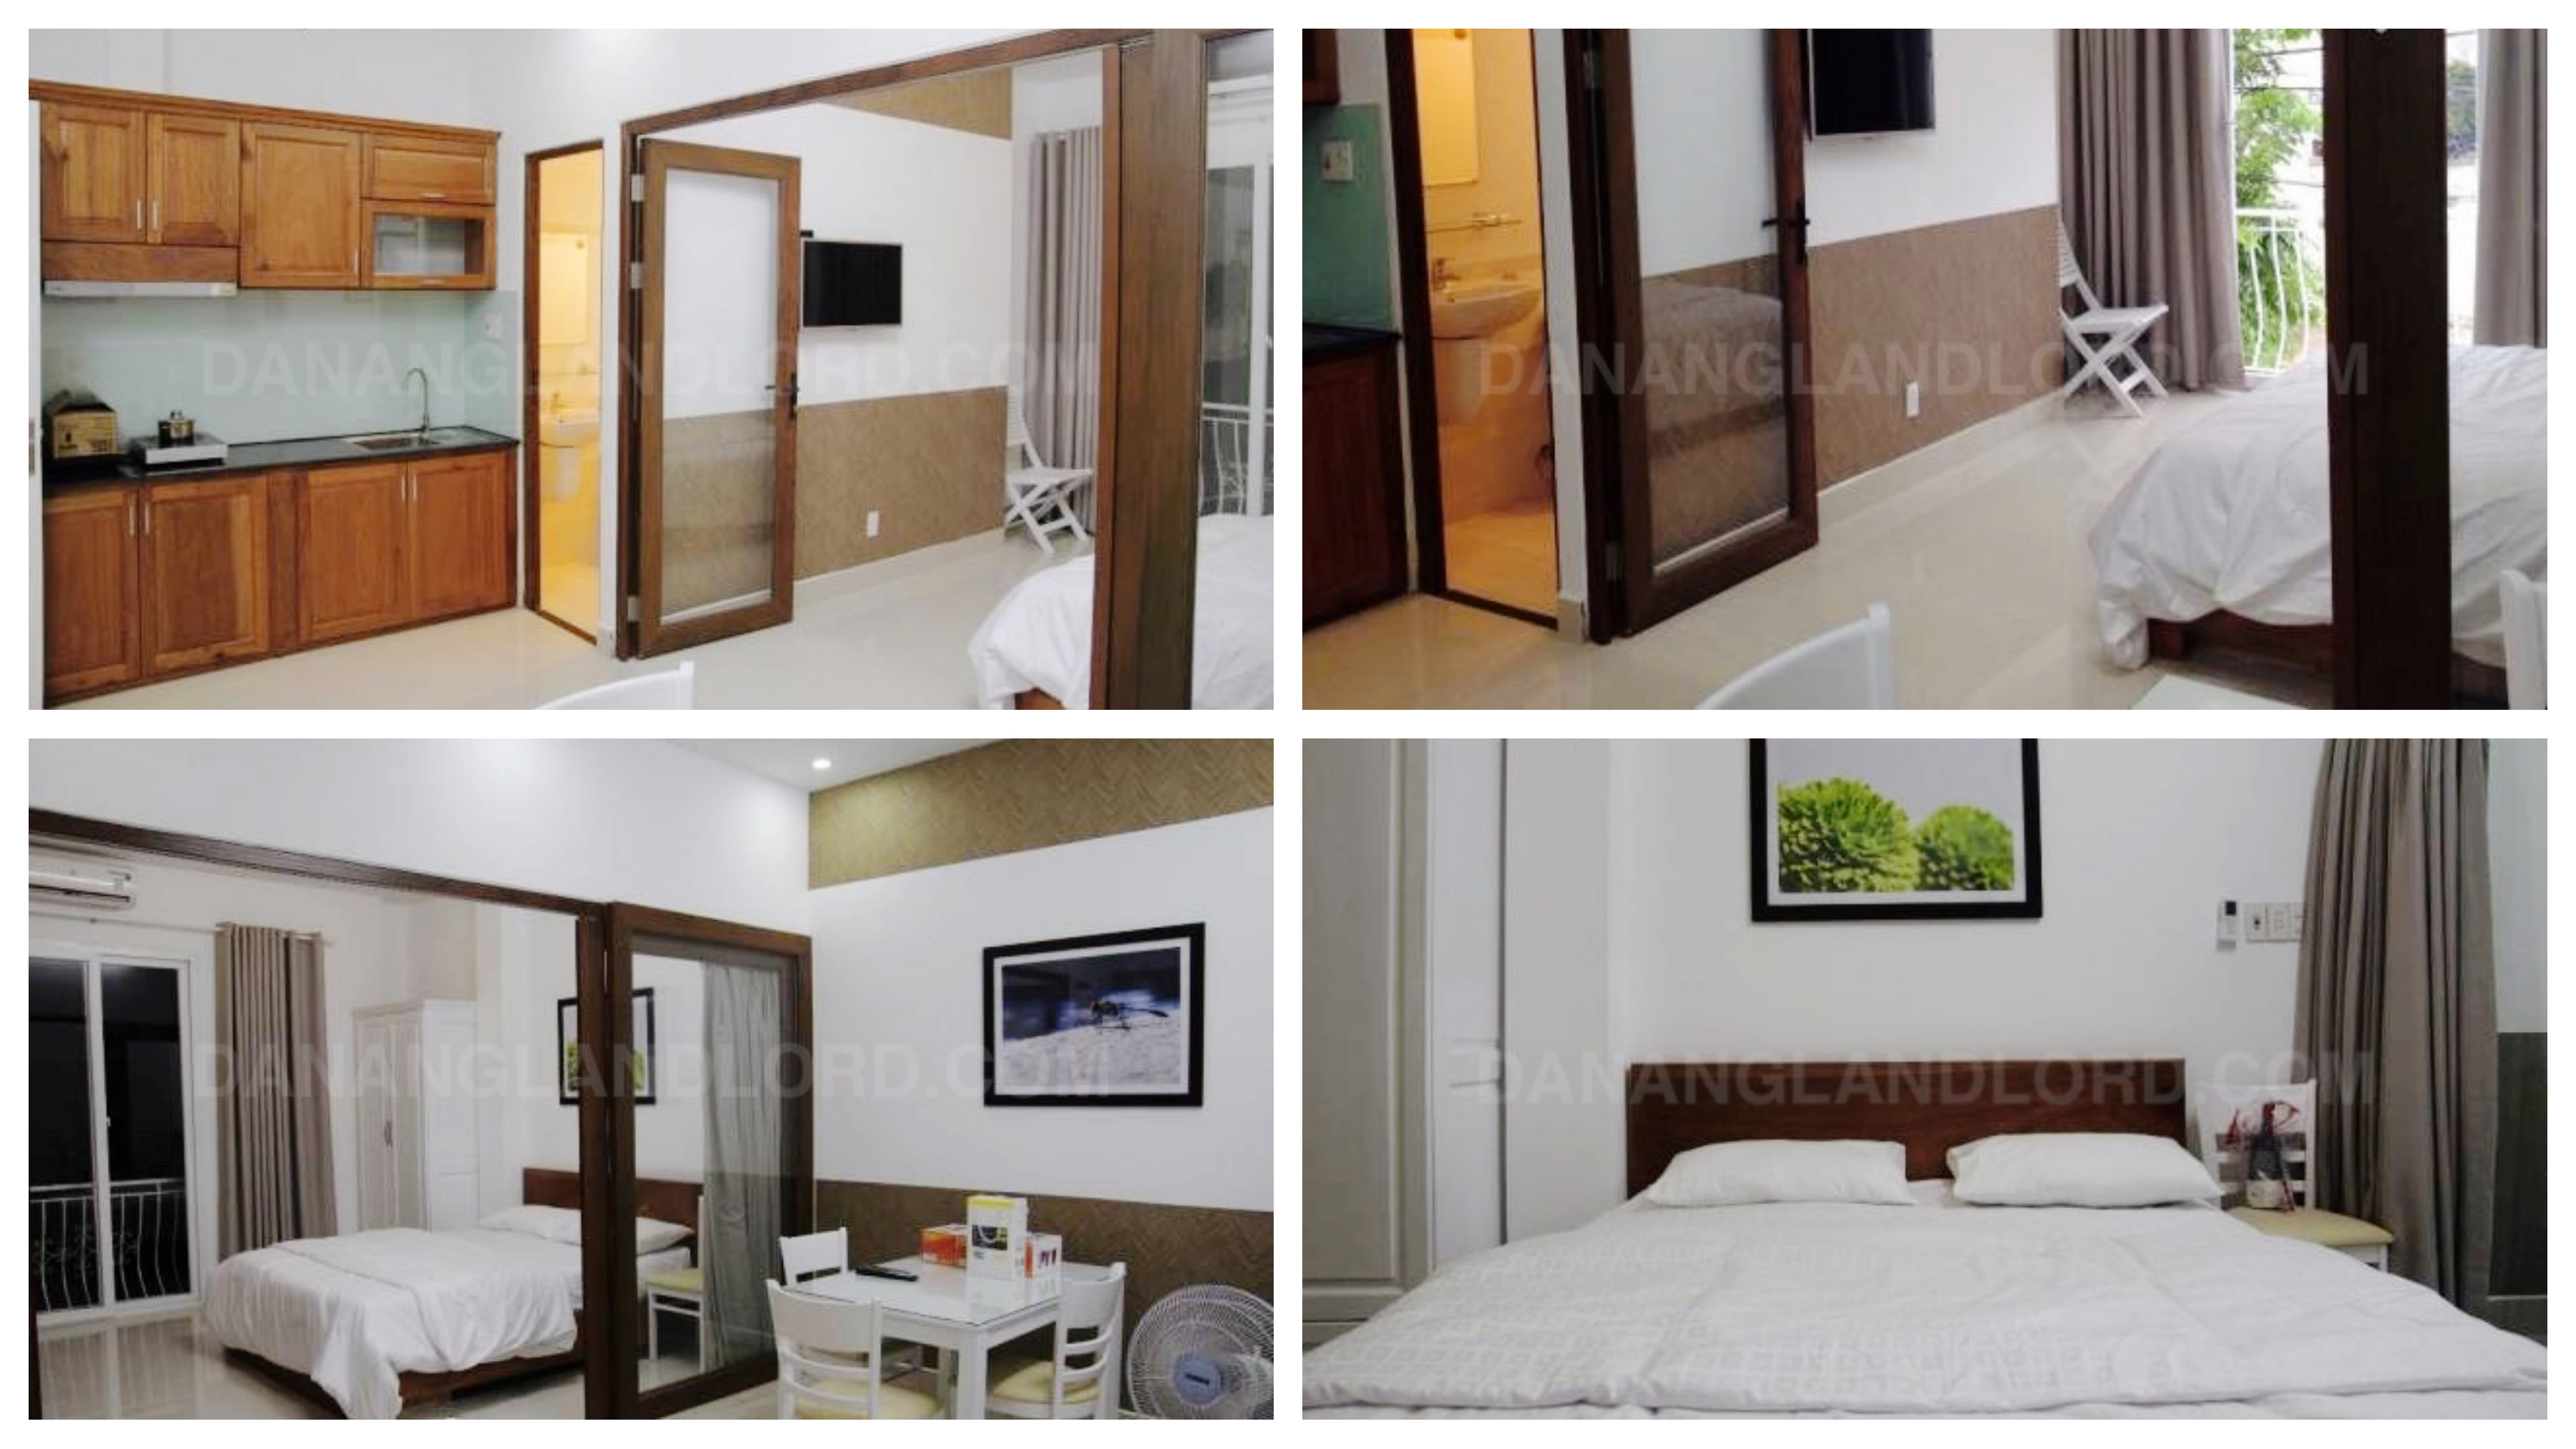 Studio apartment, 1 bedroom, 5 million in An Thuong area